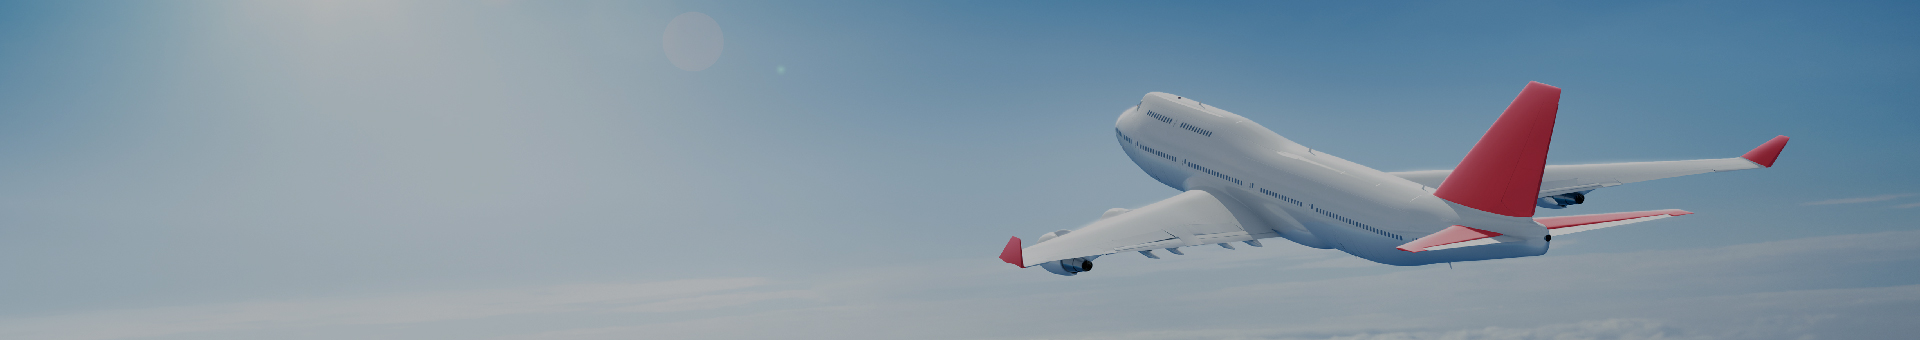 Get to know the ins and outs of saving money on your flights to Canada from any country.